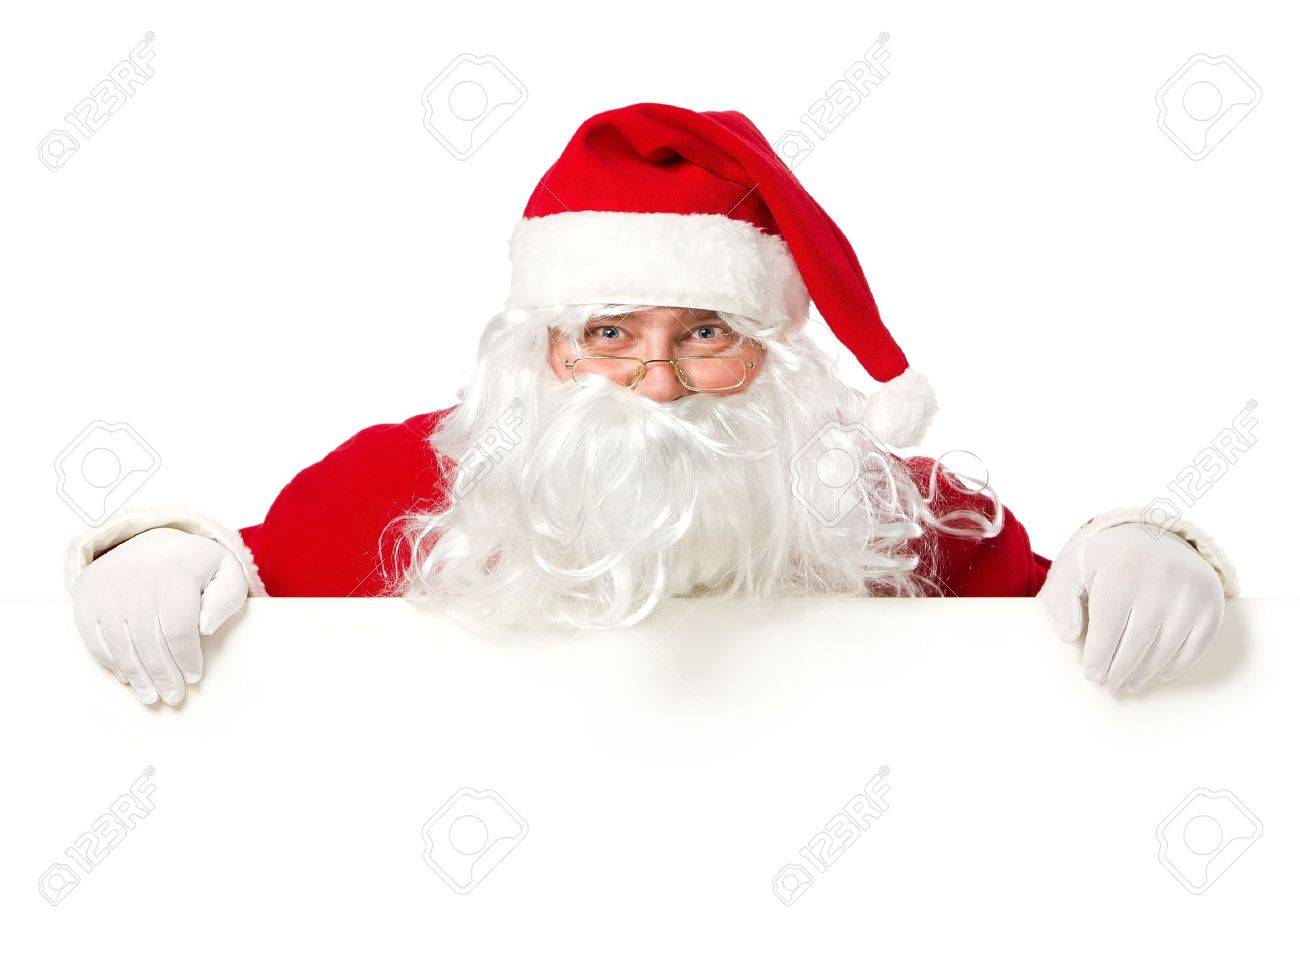 Happy Santa Claus looking out from behind the blank sign isolated on white background with copy space - 16519317